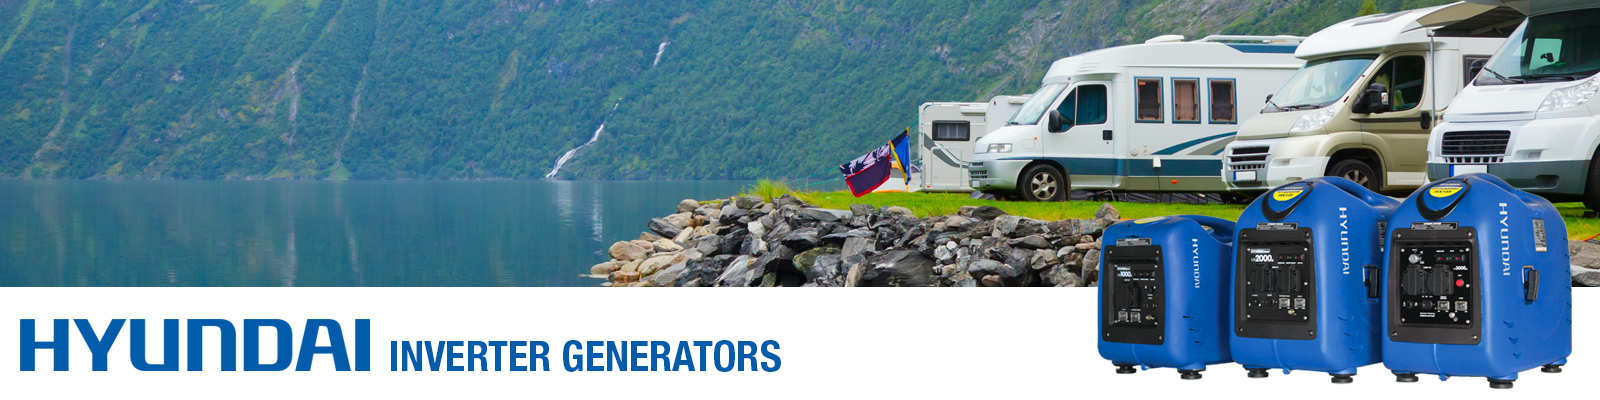 Inverter Generators - Buy Online - Free UK Delivery